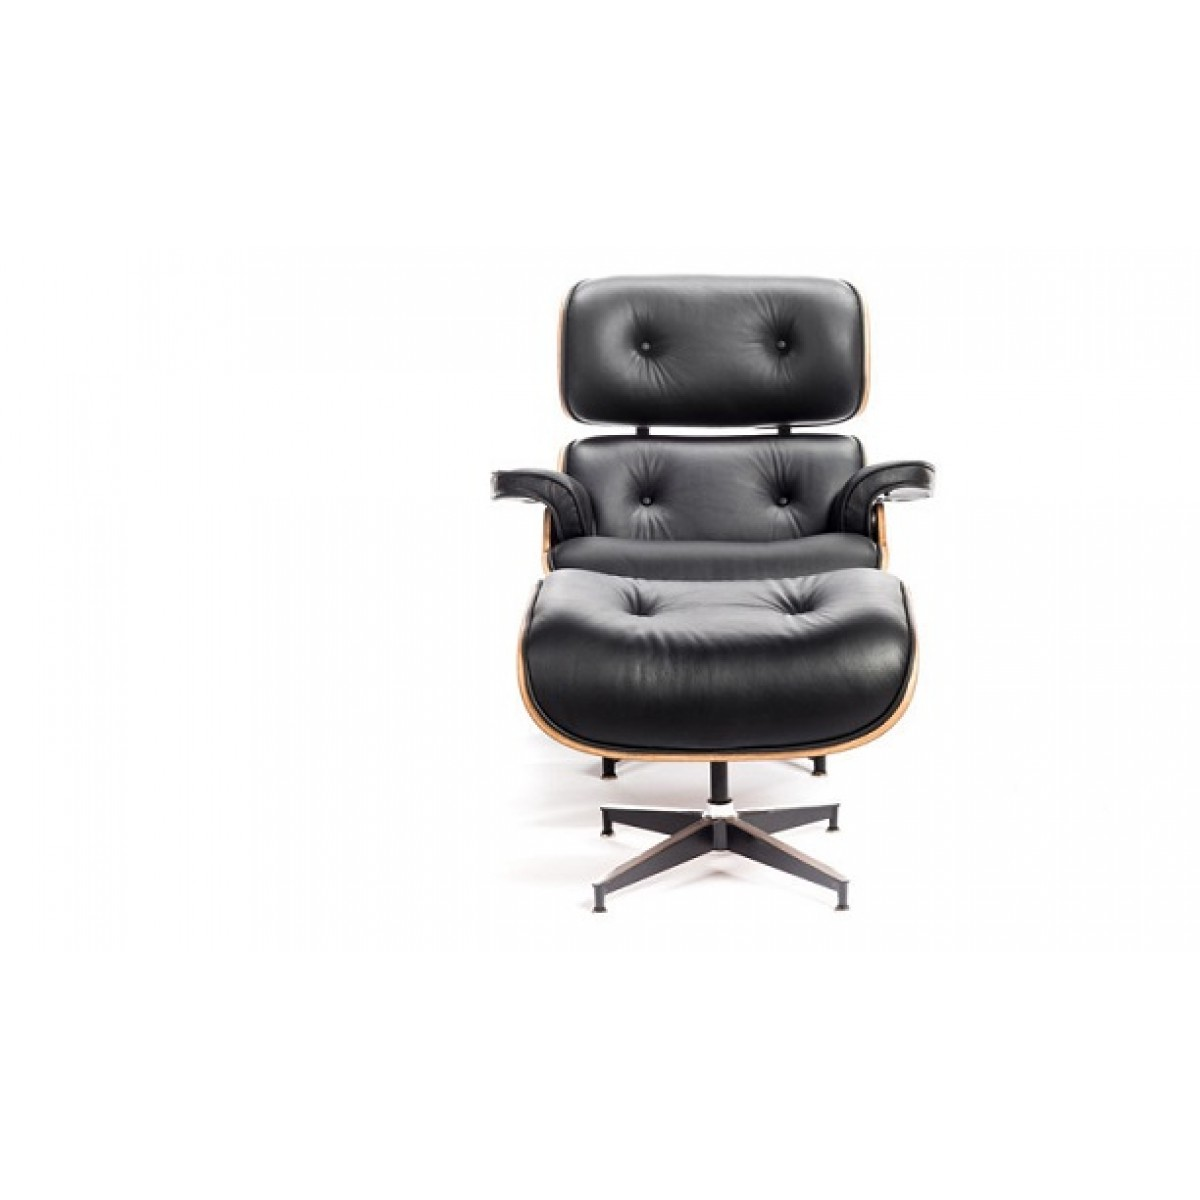 Eames style lounge chair and ottoman black leather oak plywood for Eames replica deutschland